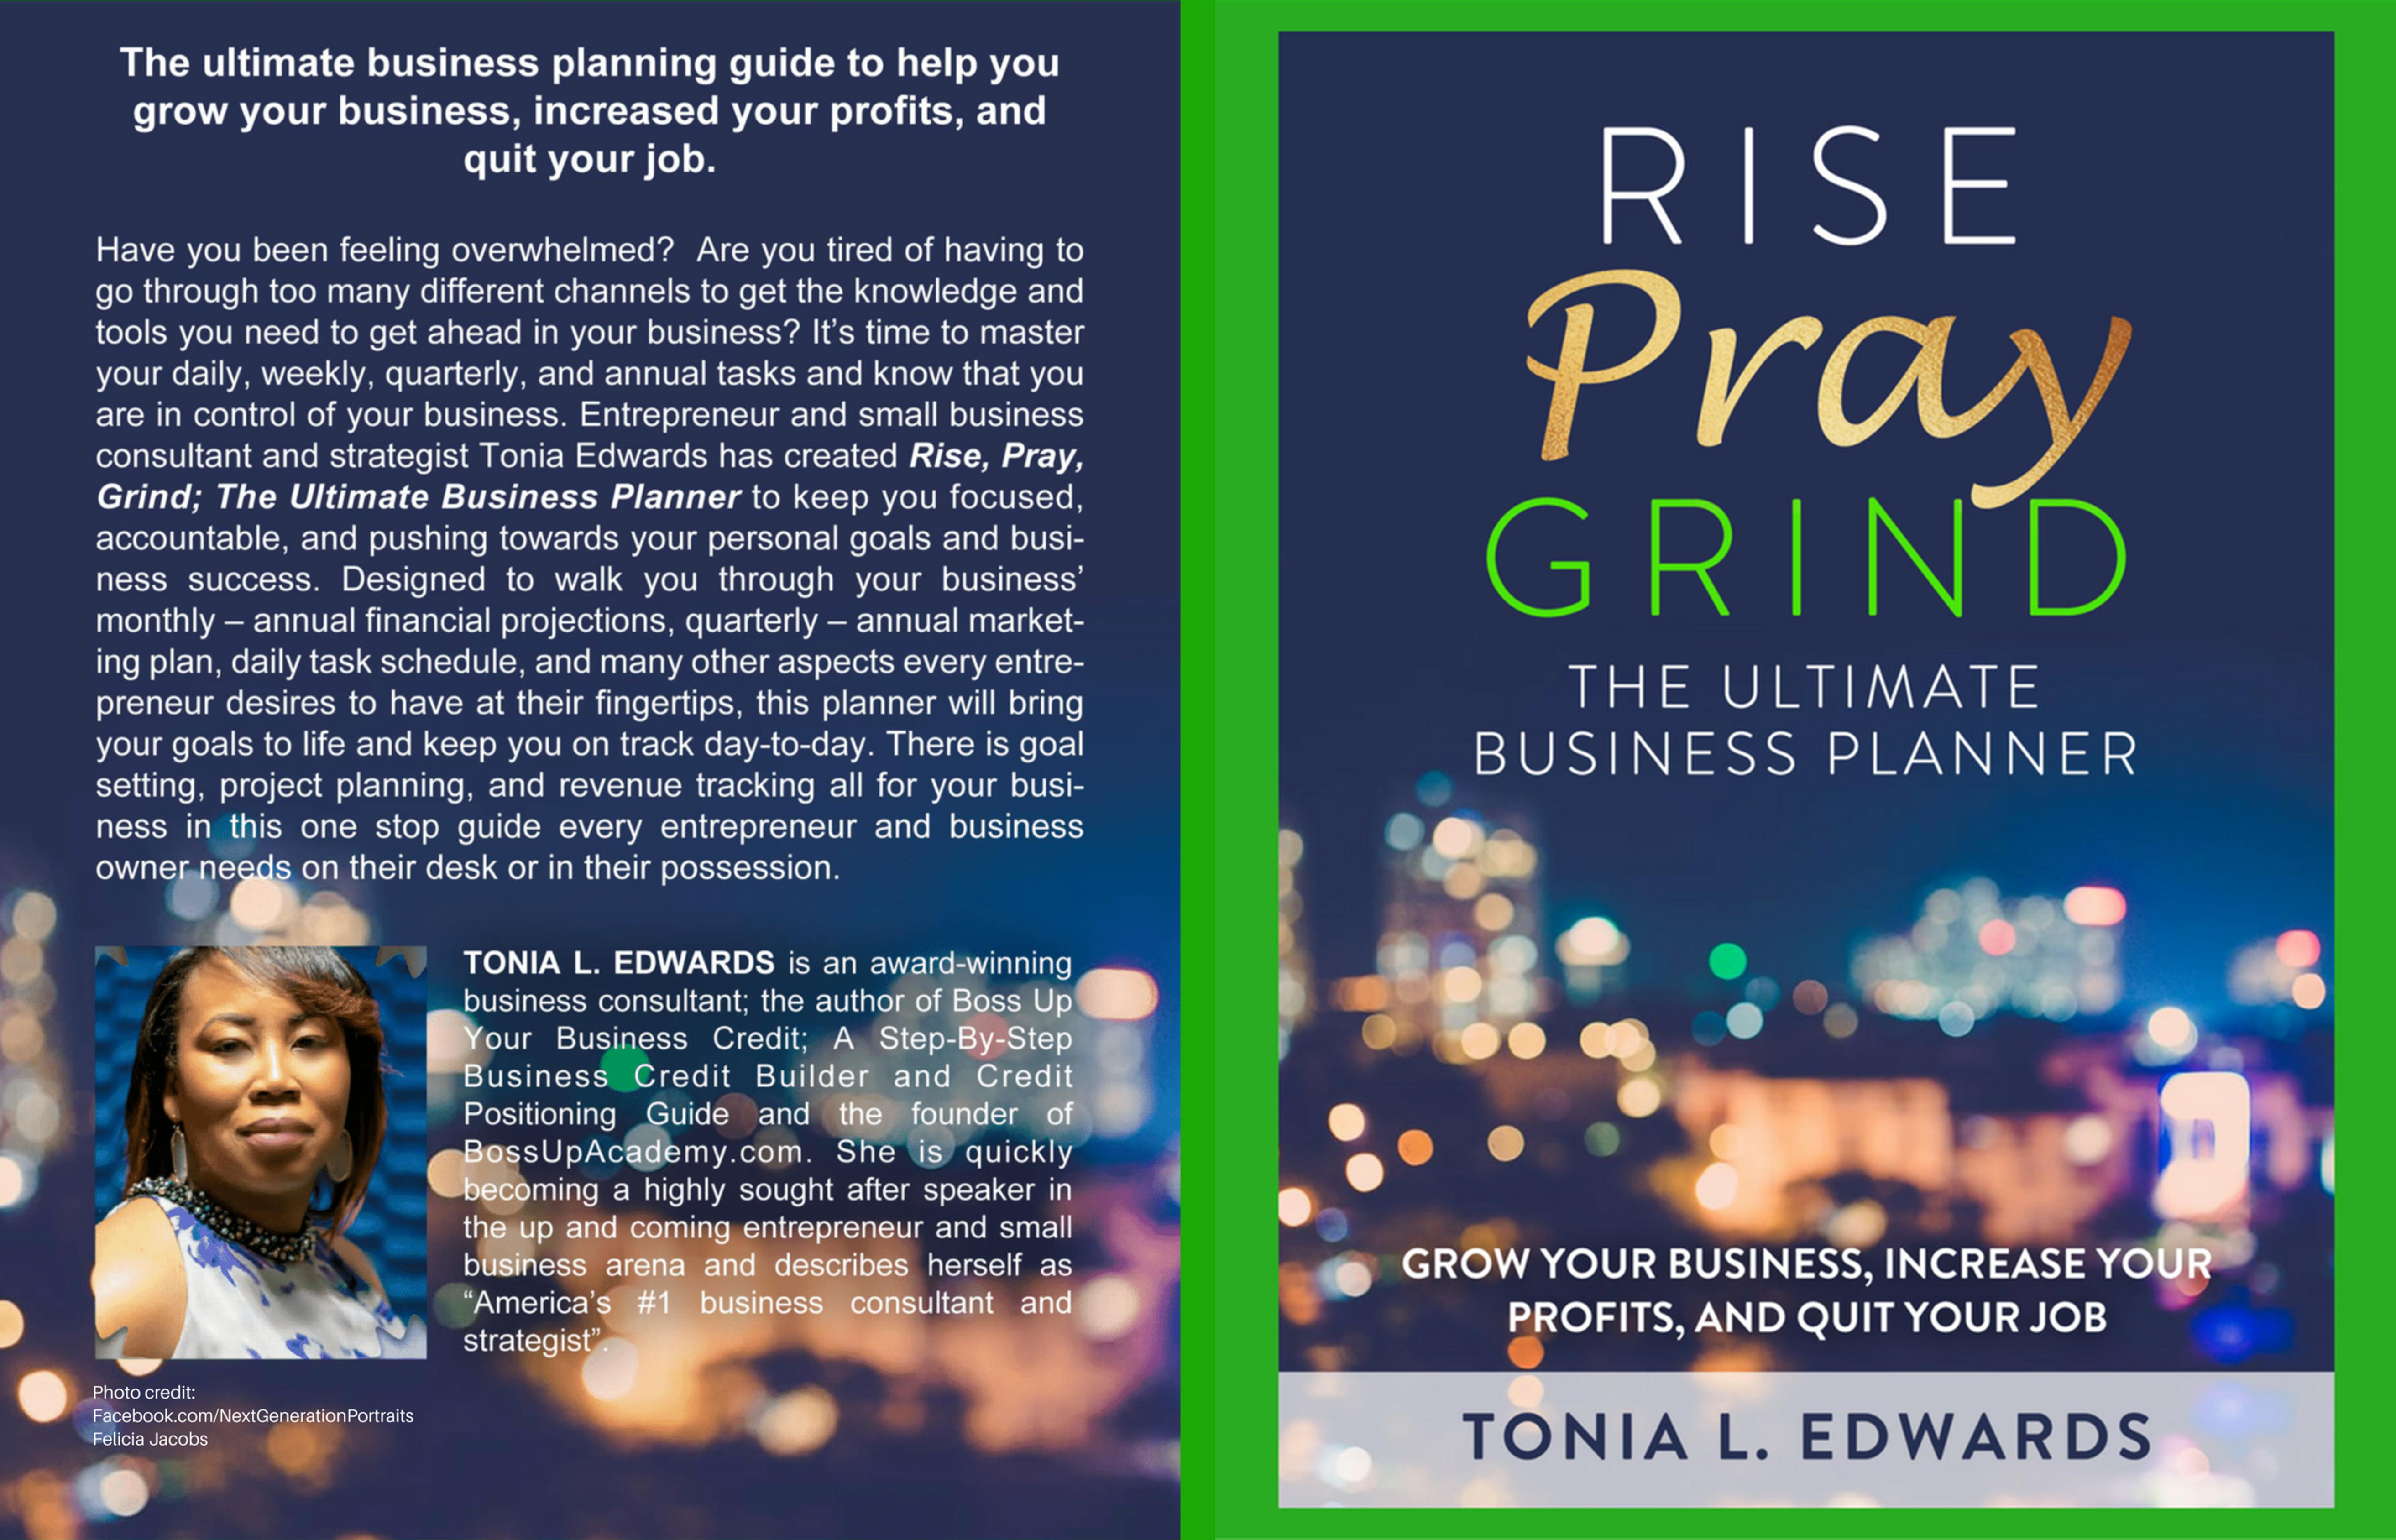 Rise, Pray, Grind; The Ultimate Business Planner cover image